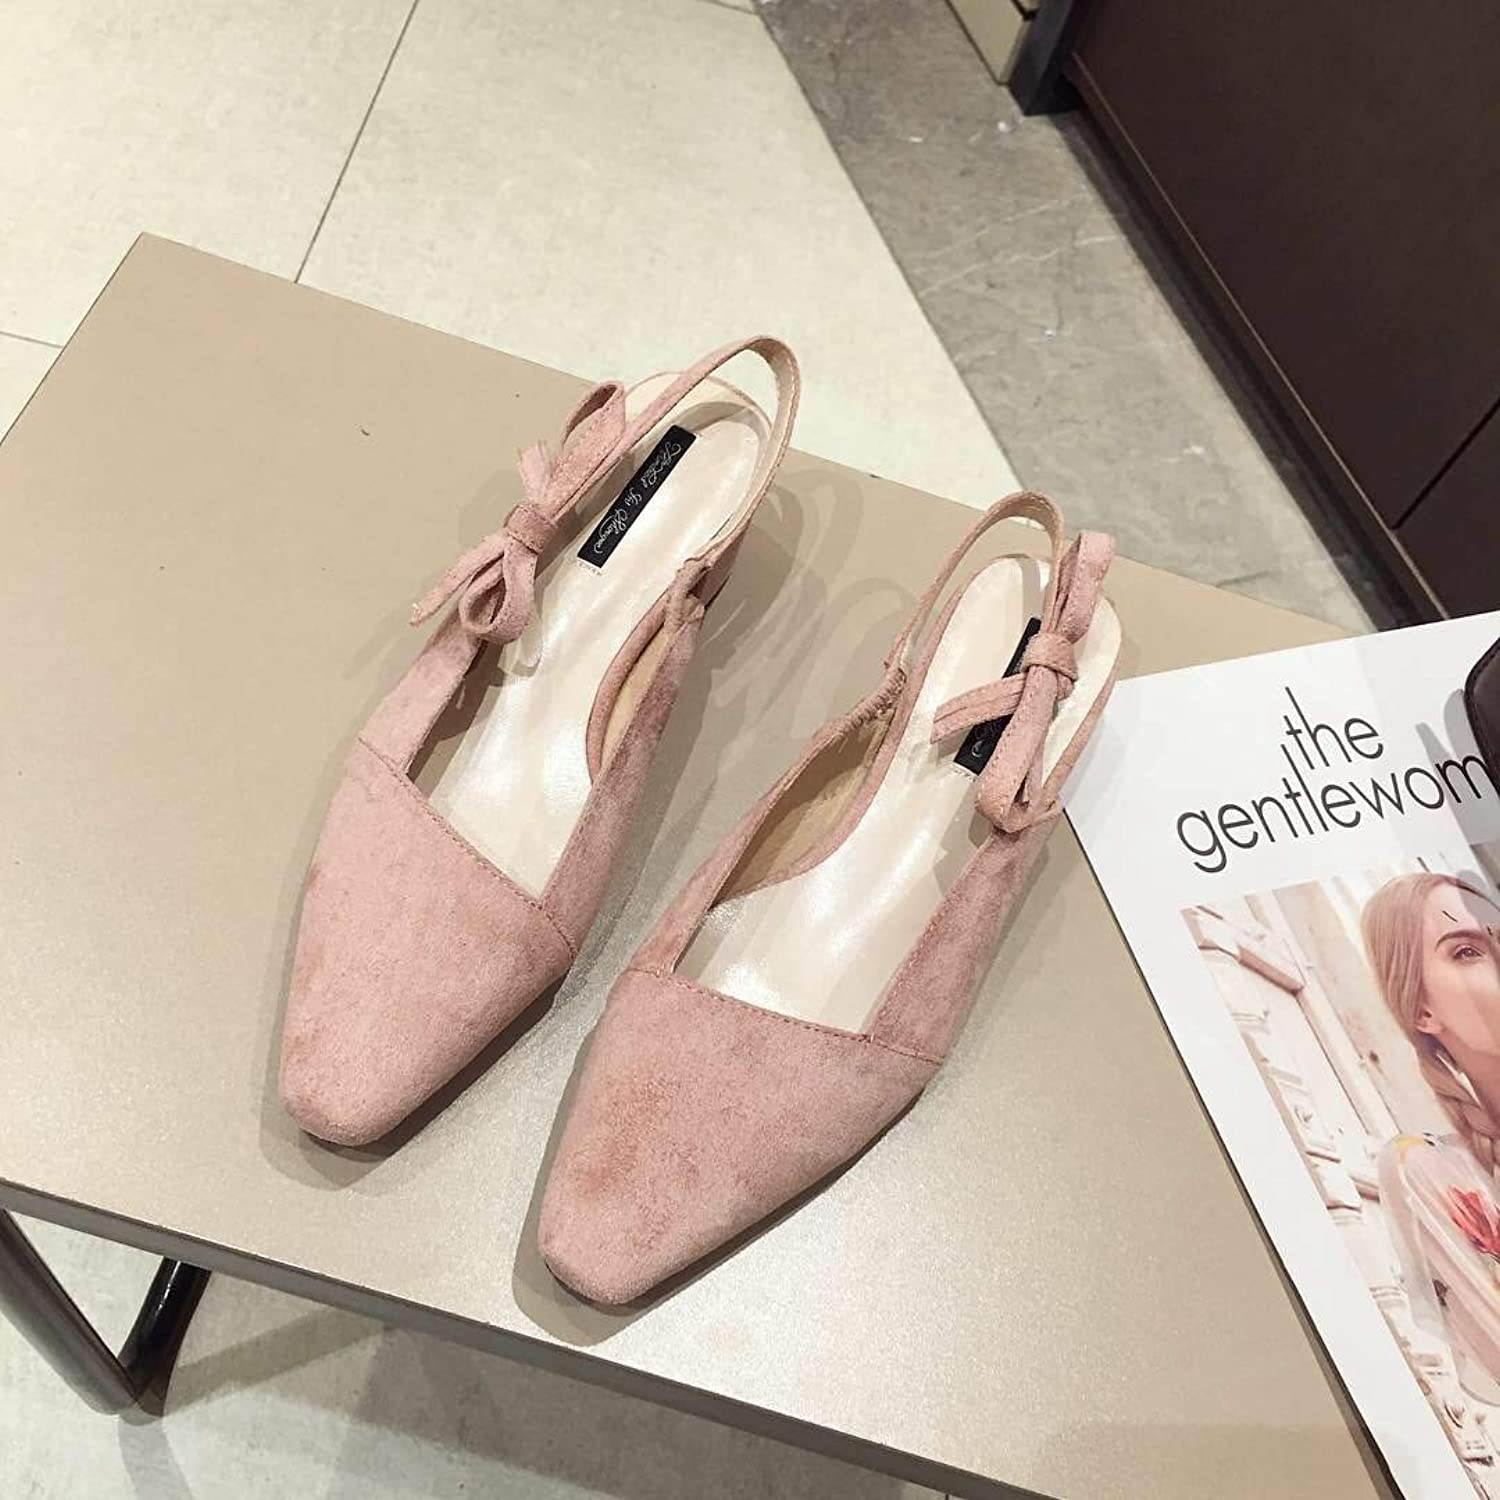 DNJKSA Fashion Casual Sandals Single shoes 2019 New Korean Version Butterfly Knot Thick Heel Low Heel One-Word Flat Sole shoes